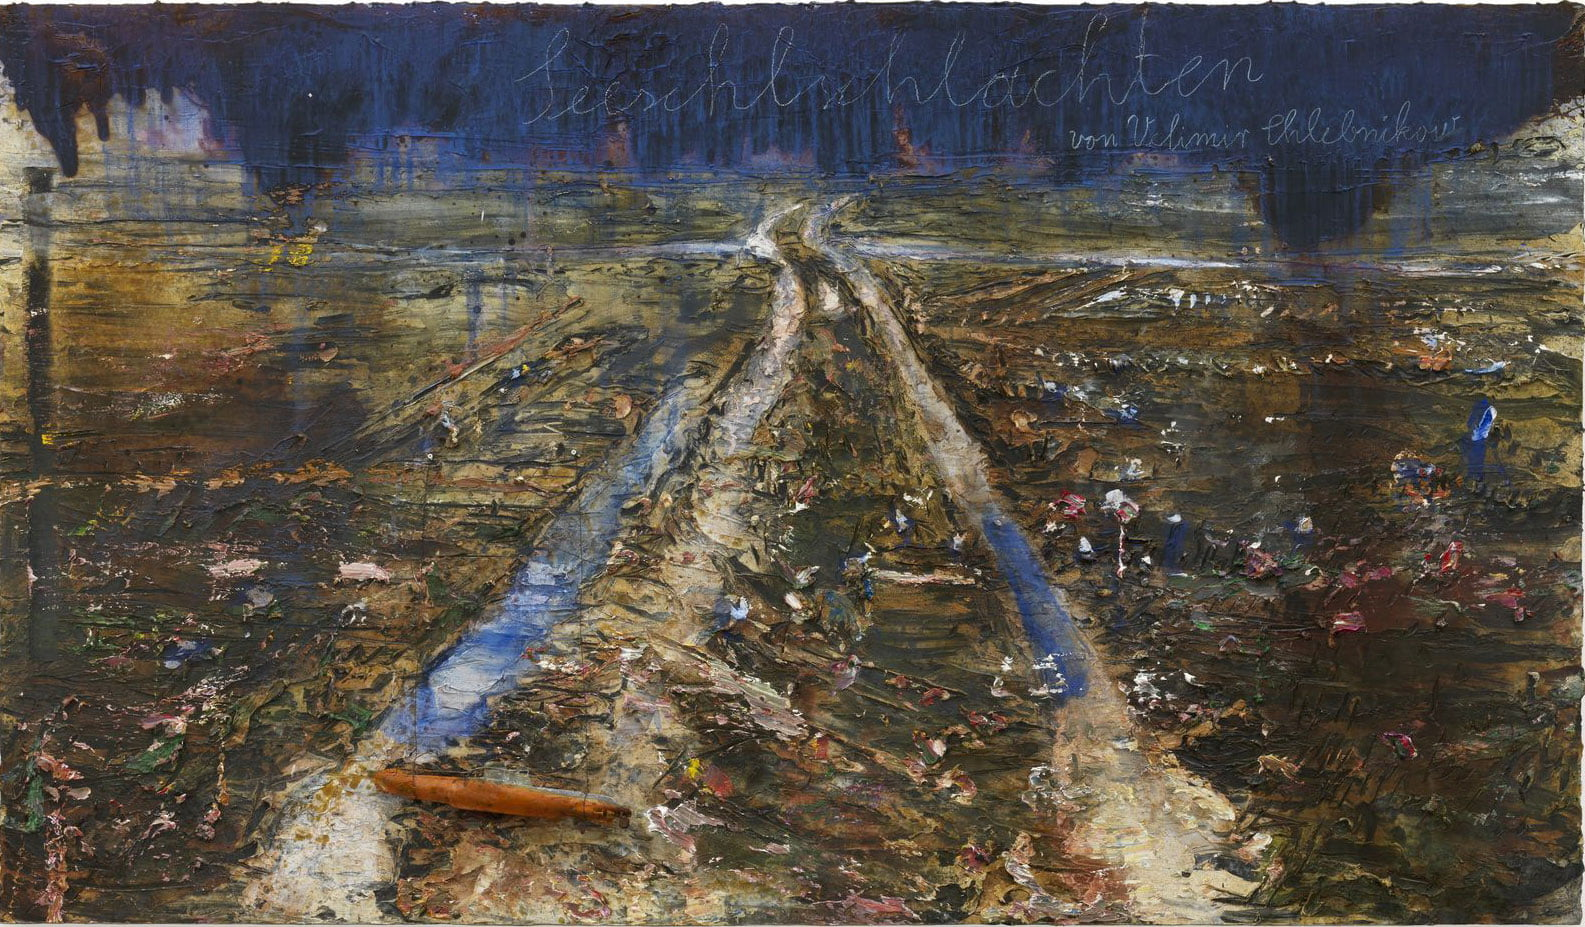 battles at sea by velimir khlebnikov by anselm kiefer photo charles duprat image